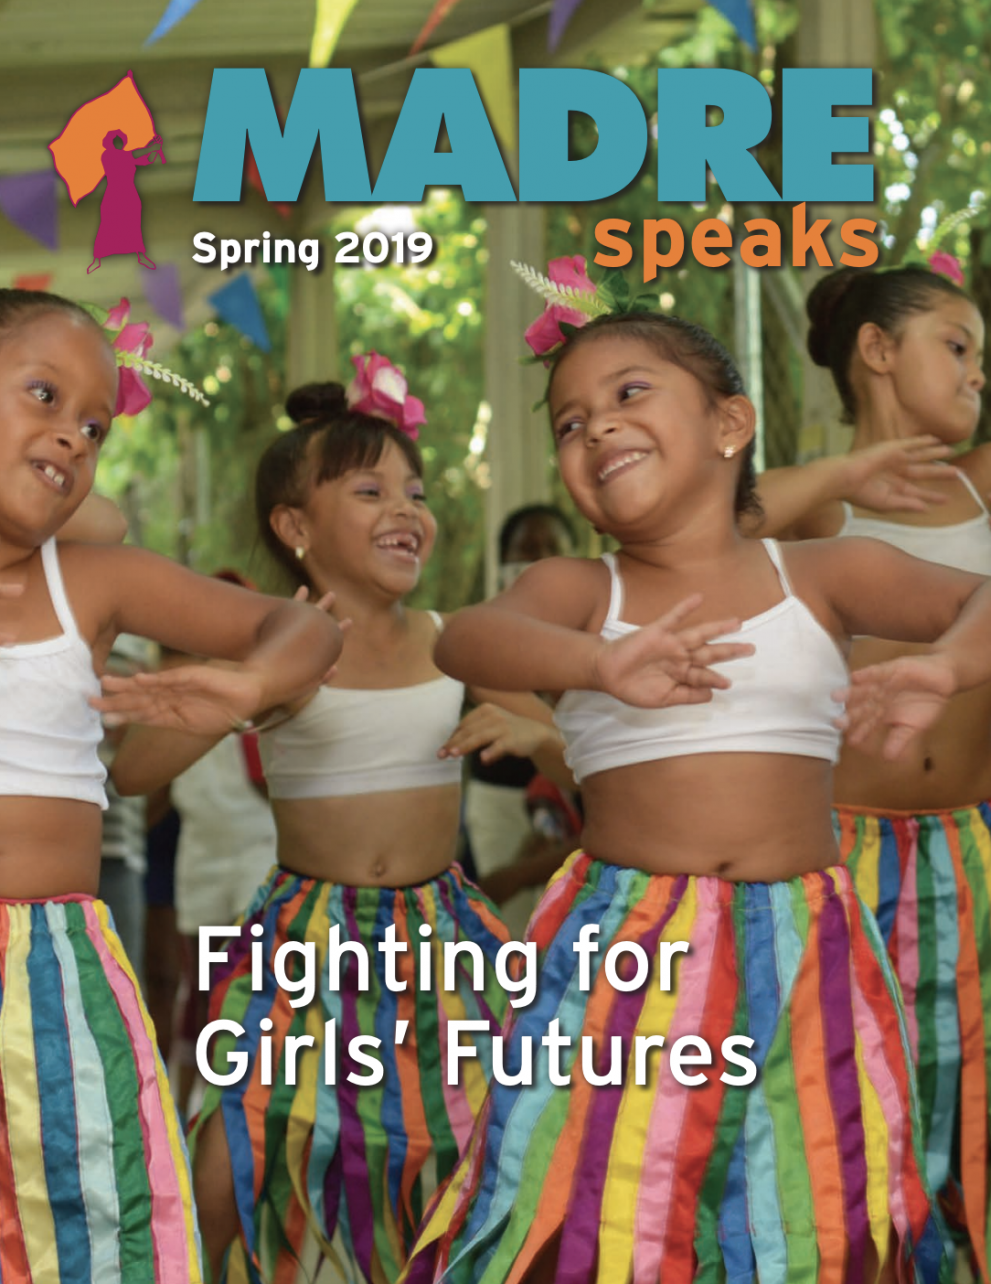 MADRE Speaks newsletter cover featuring young girls in Colombia dancing in costumes. Text reads: MADRE Spring 2019 speaks Fighting for Girls' Futures